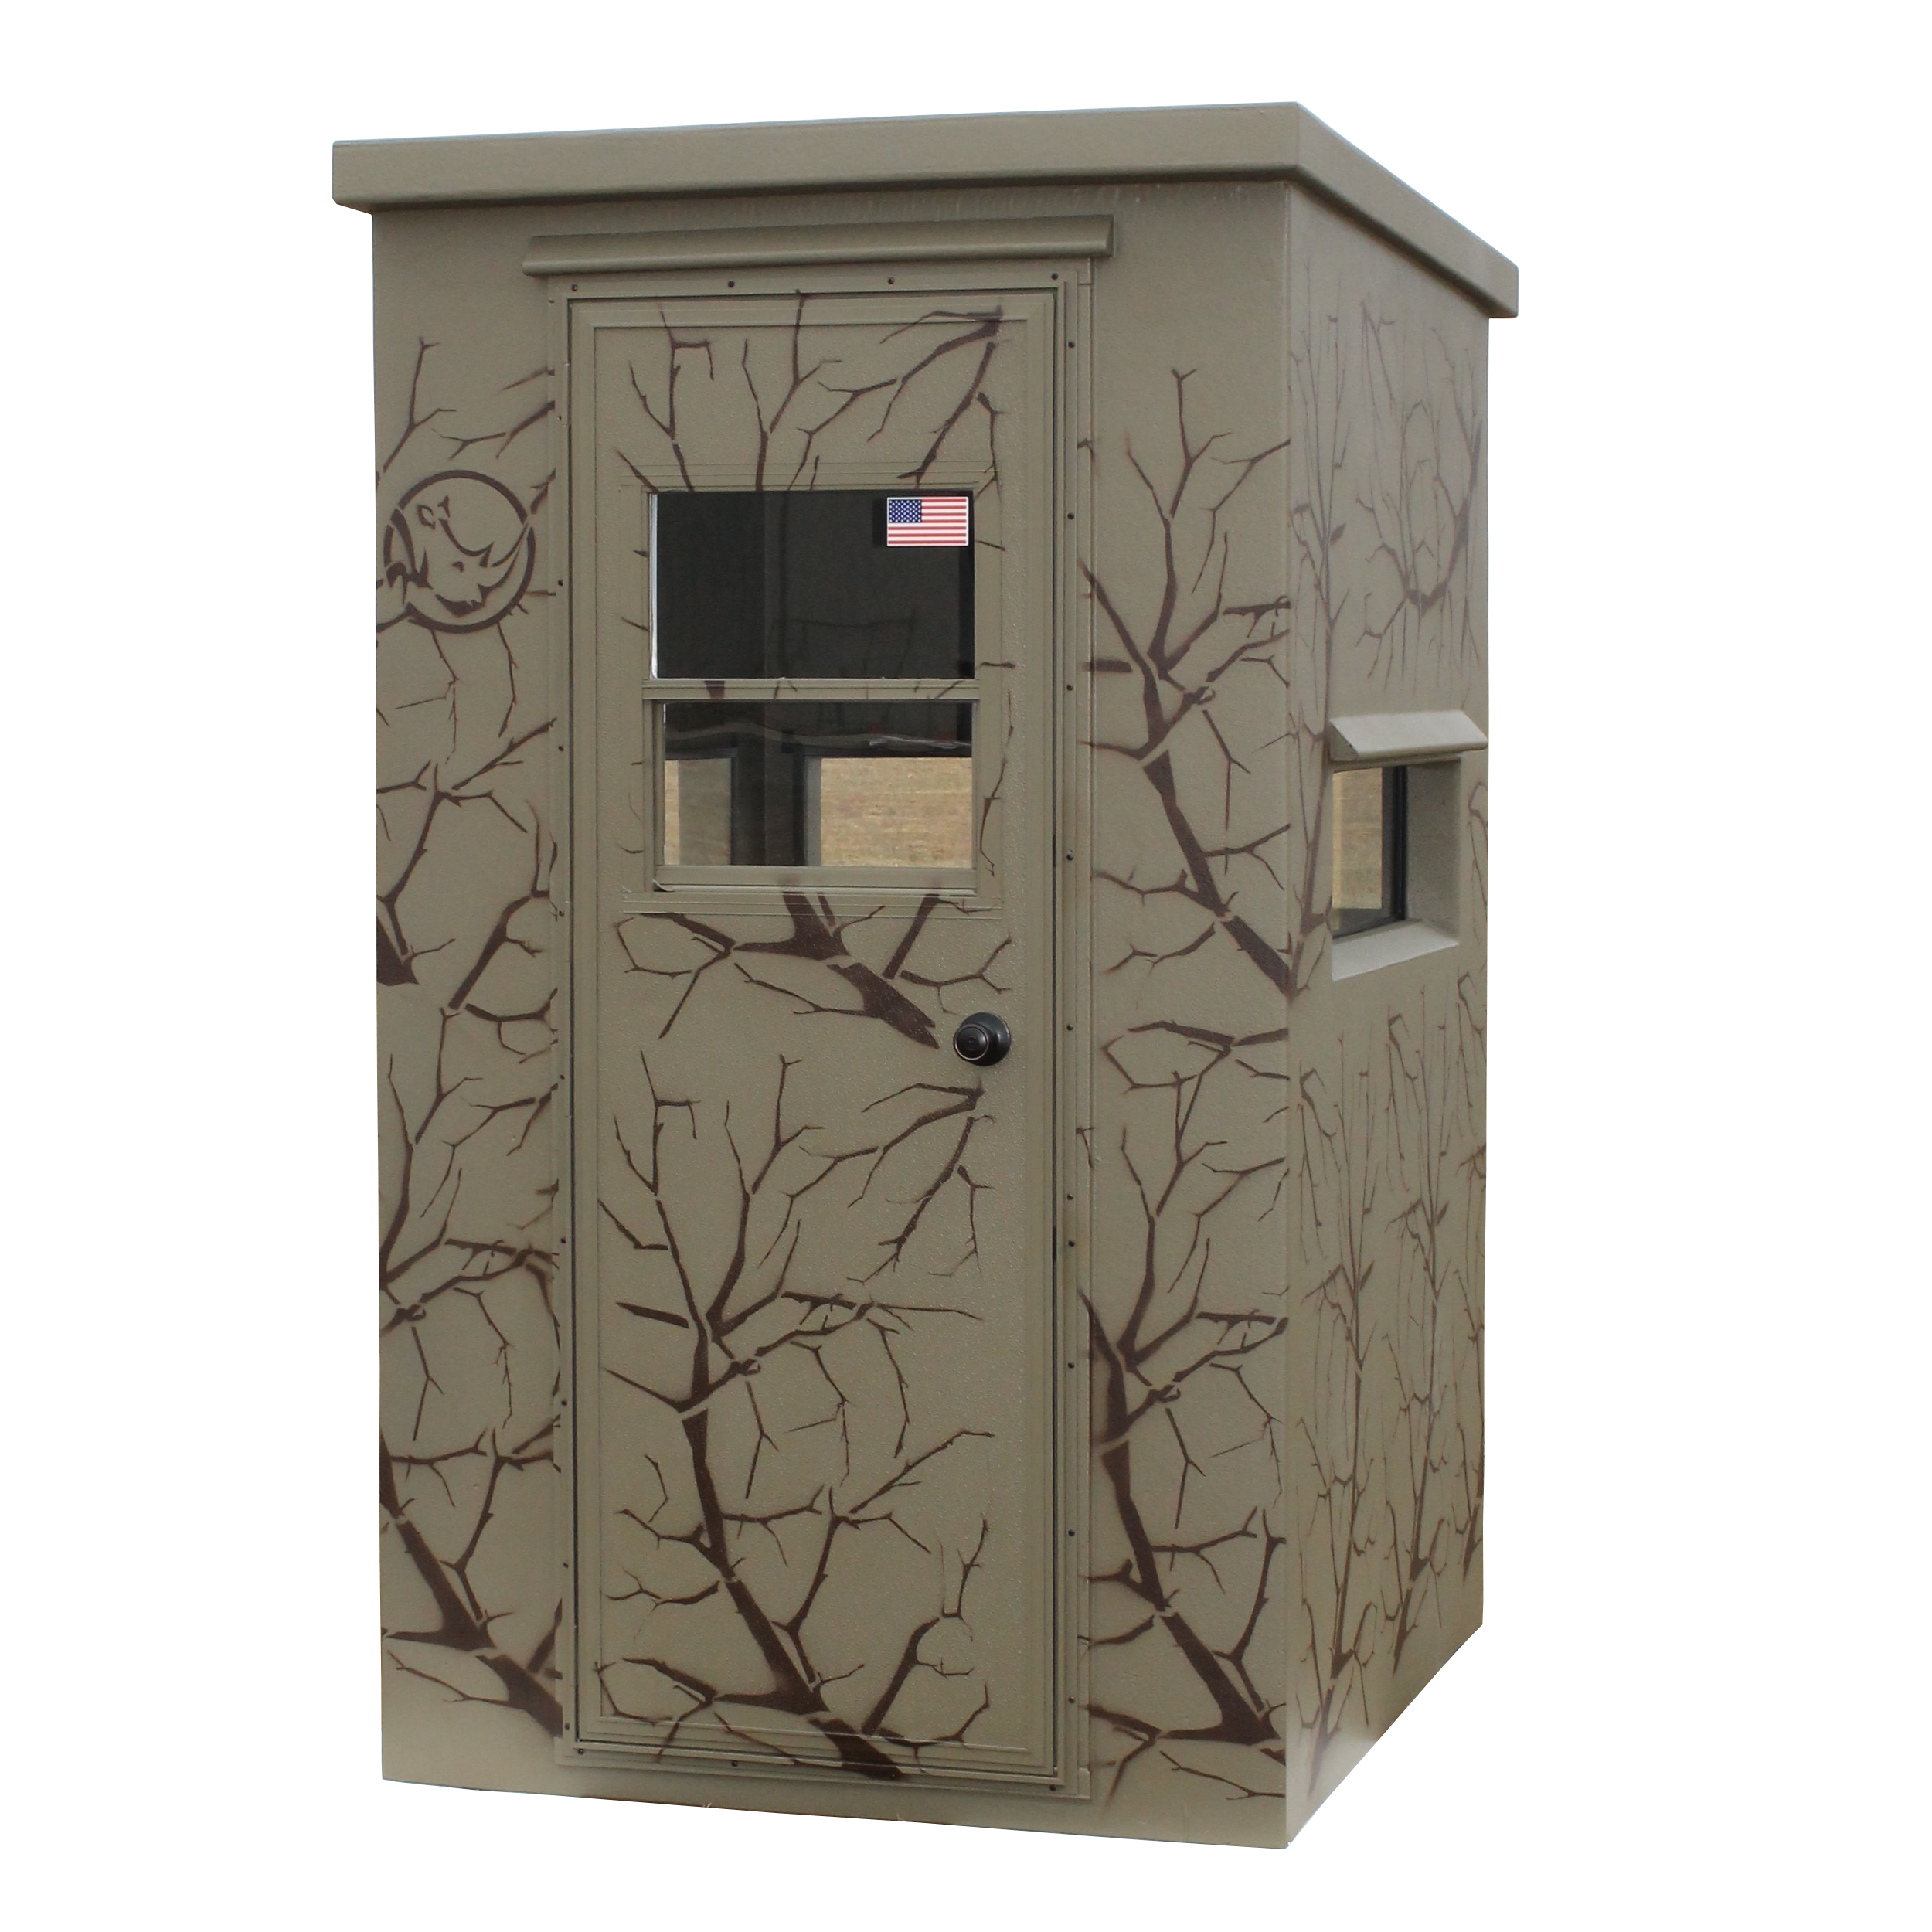 Hunting Blinds | Rhino Building Products, Inc